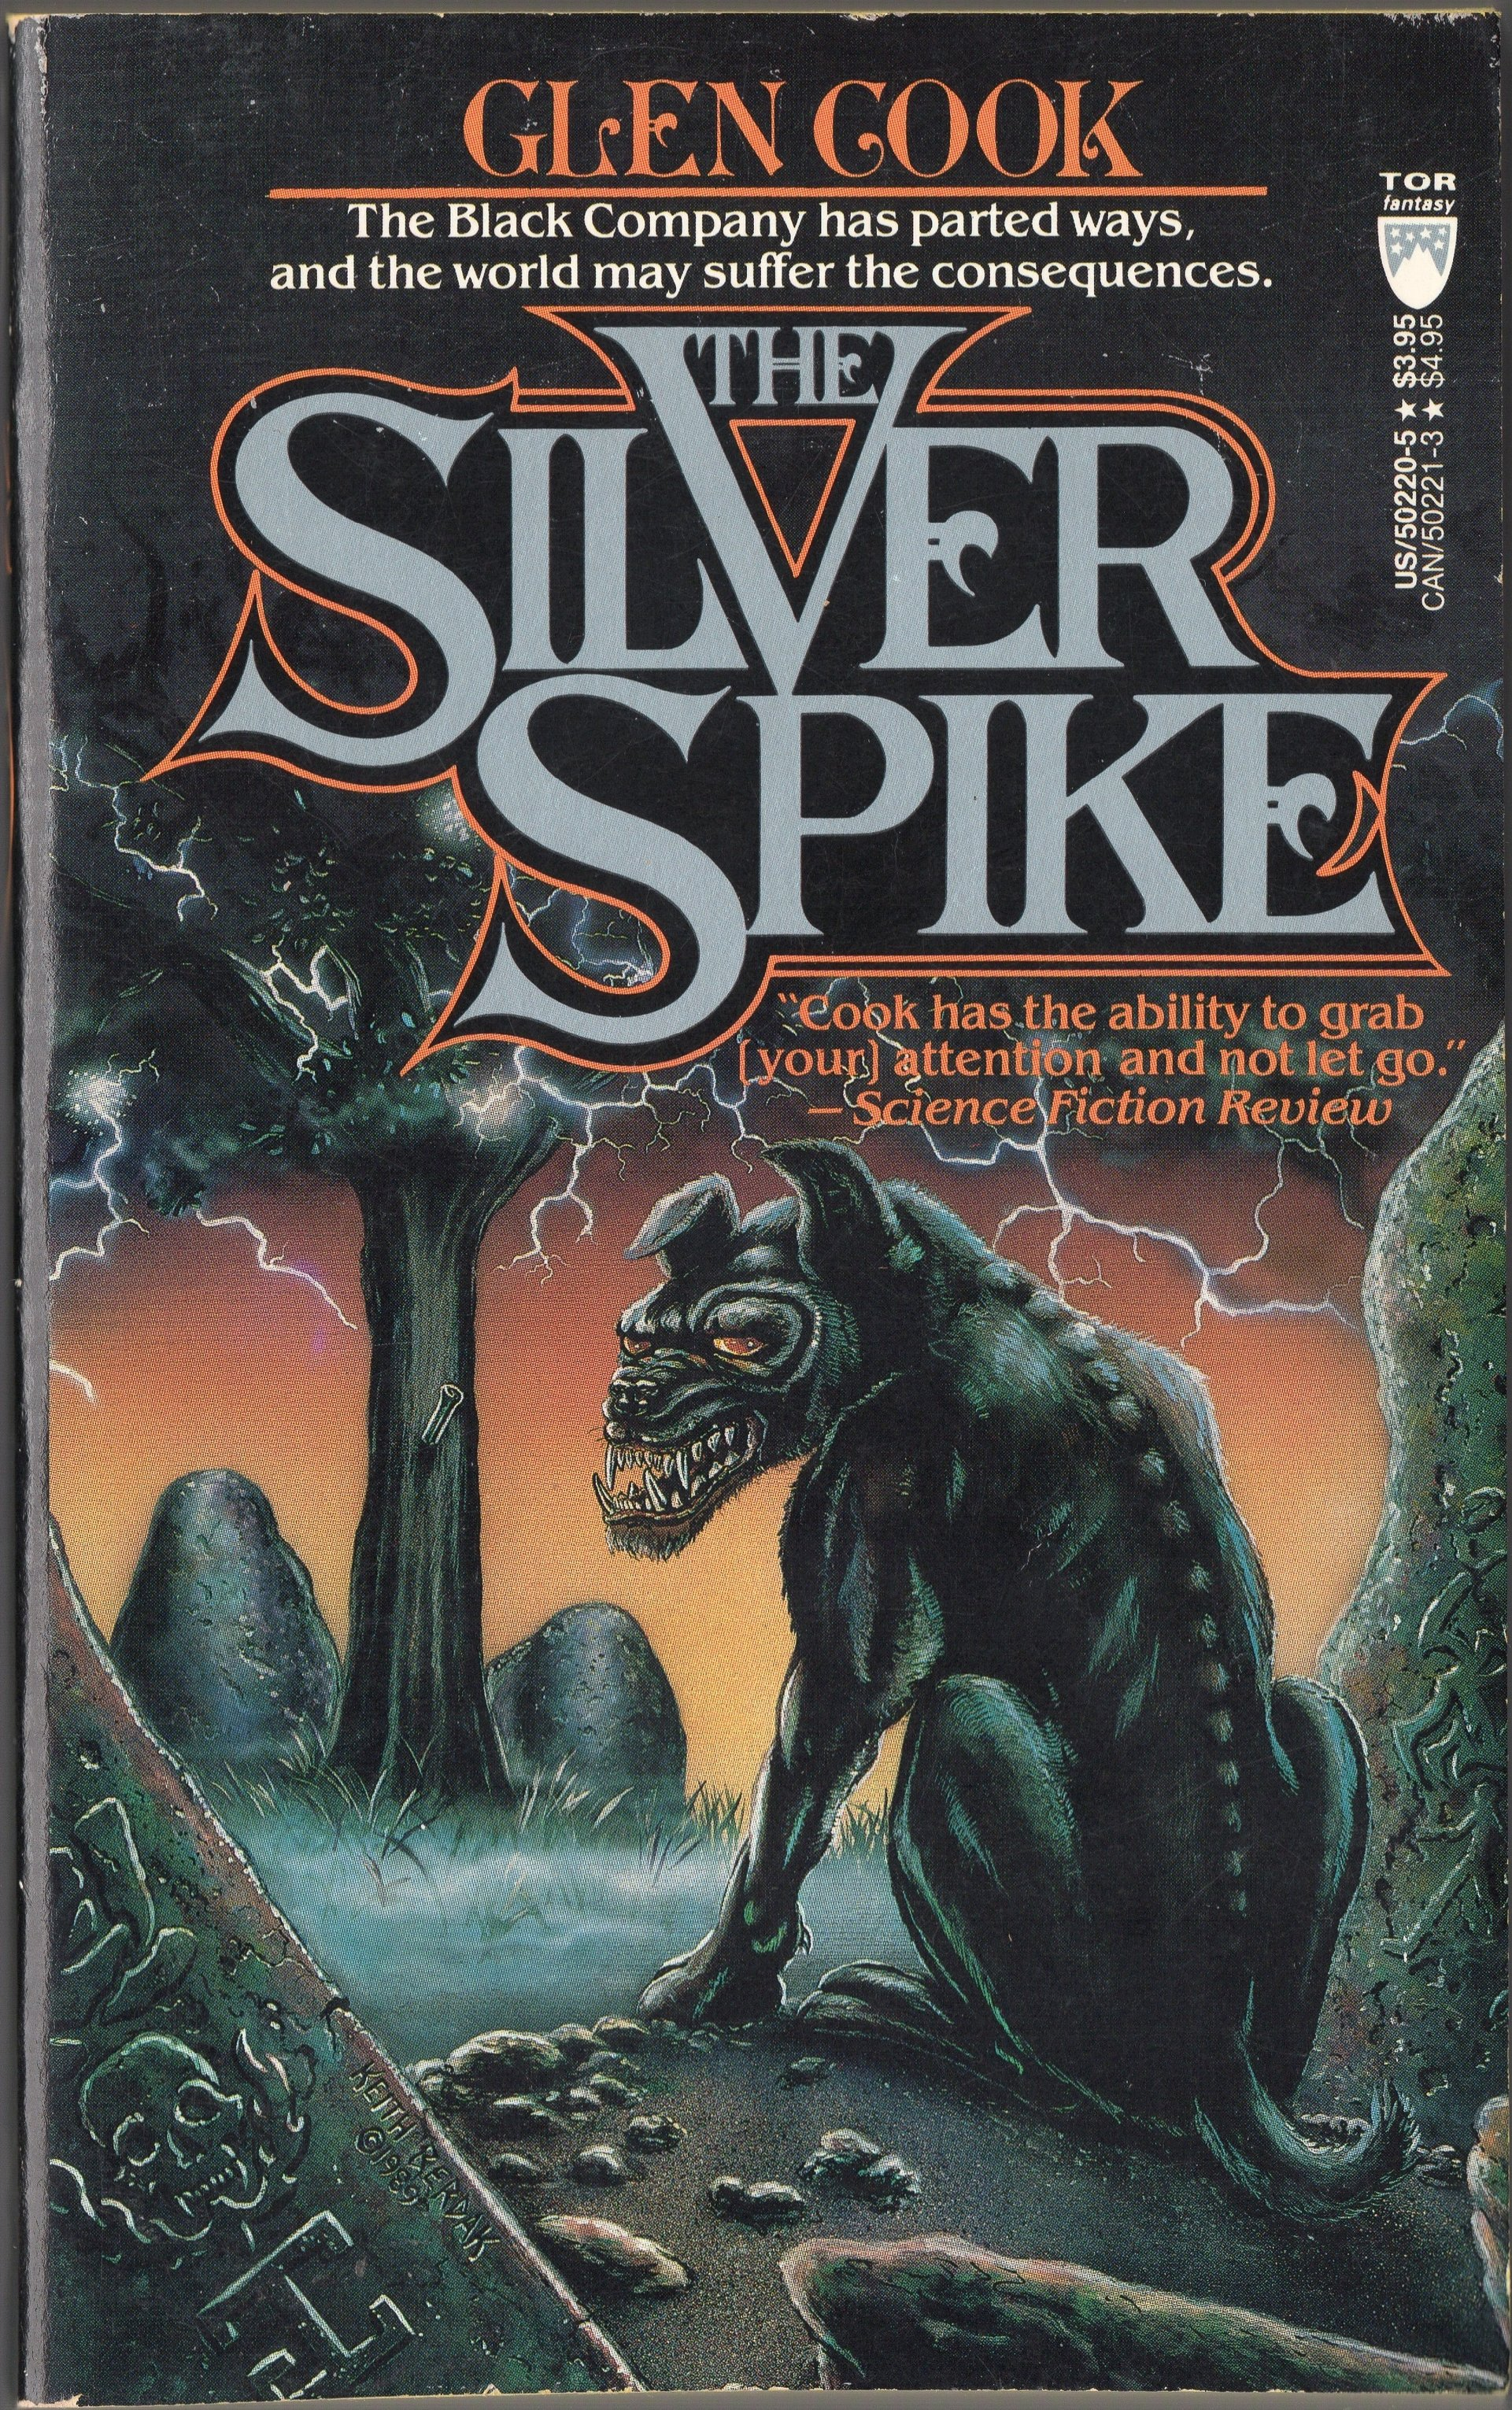 File:The Silver Spike.jpg